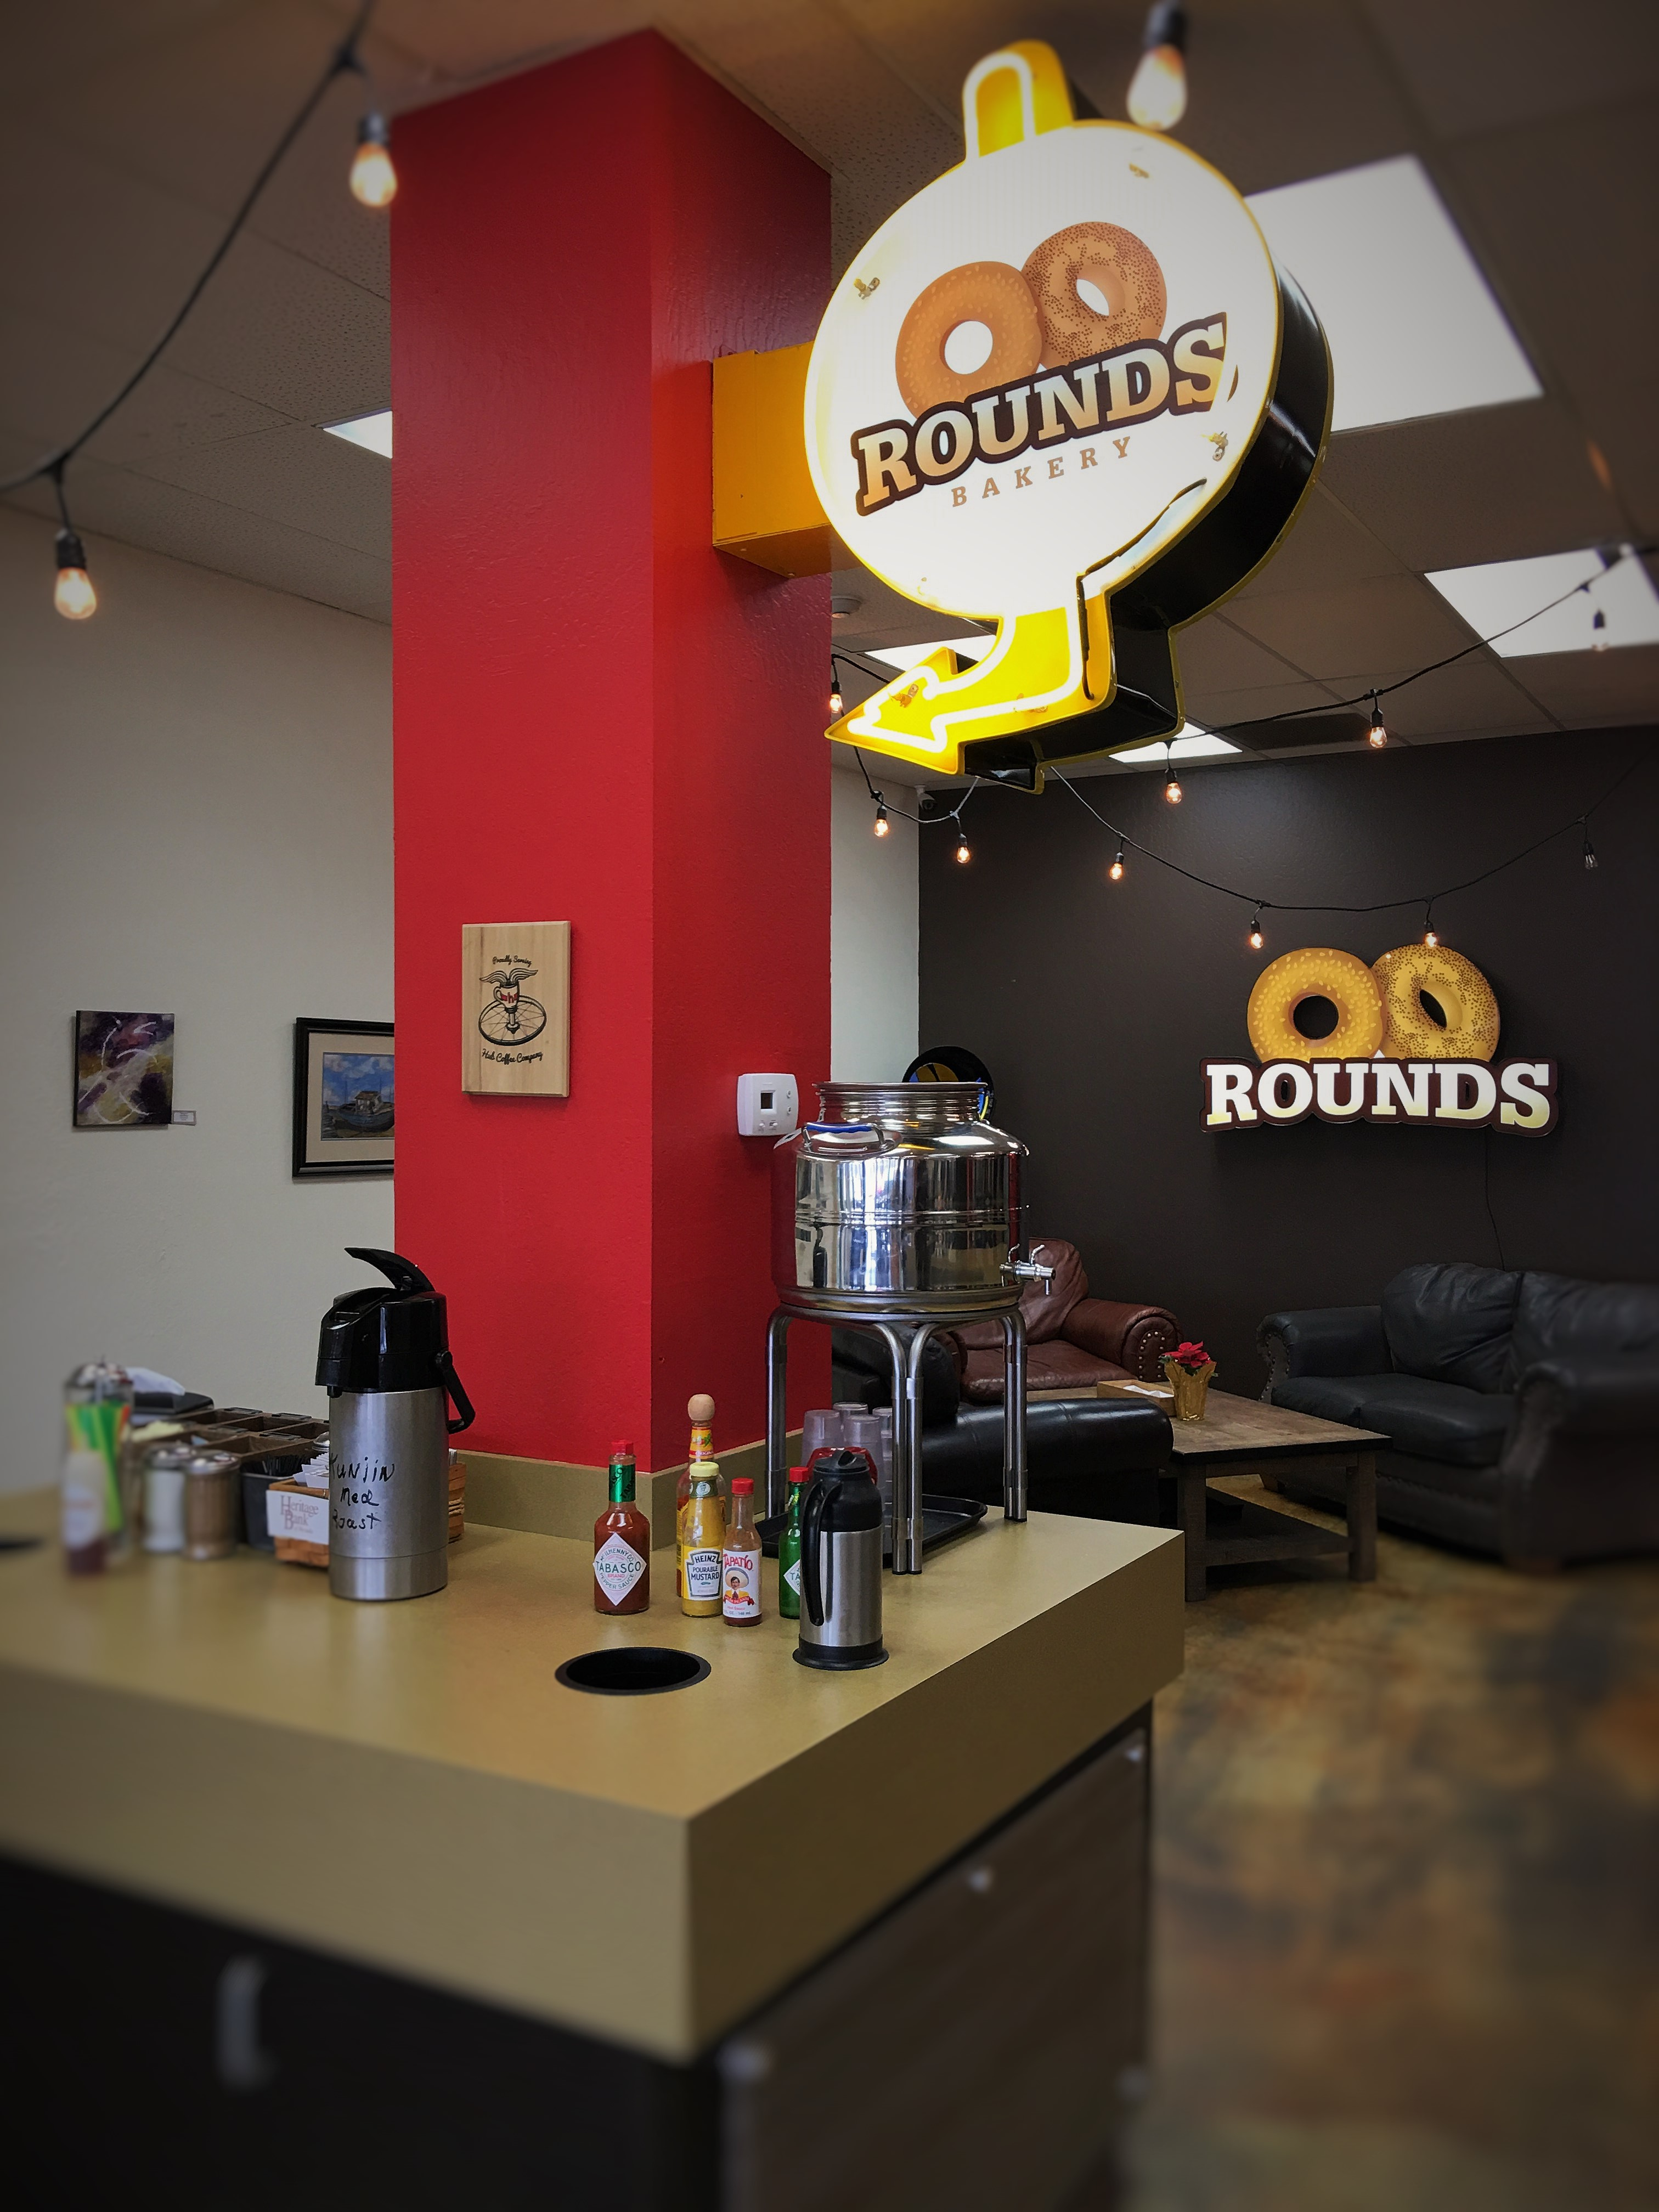 Rounds Bakery